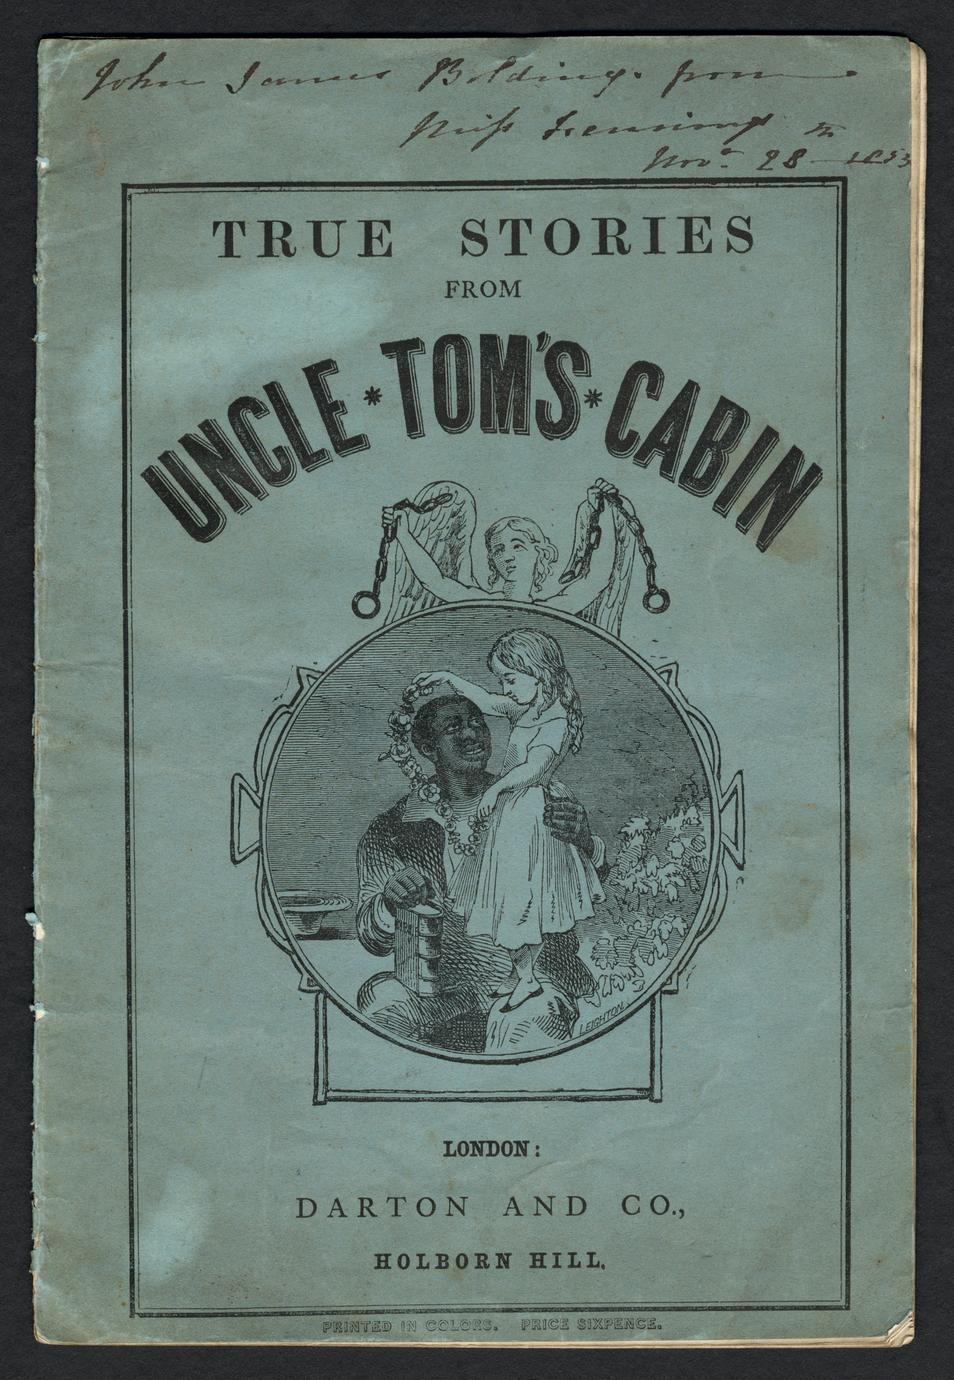 True stories from Uncle Tom's cabin (1 of 3)